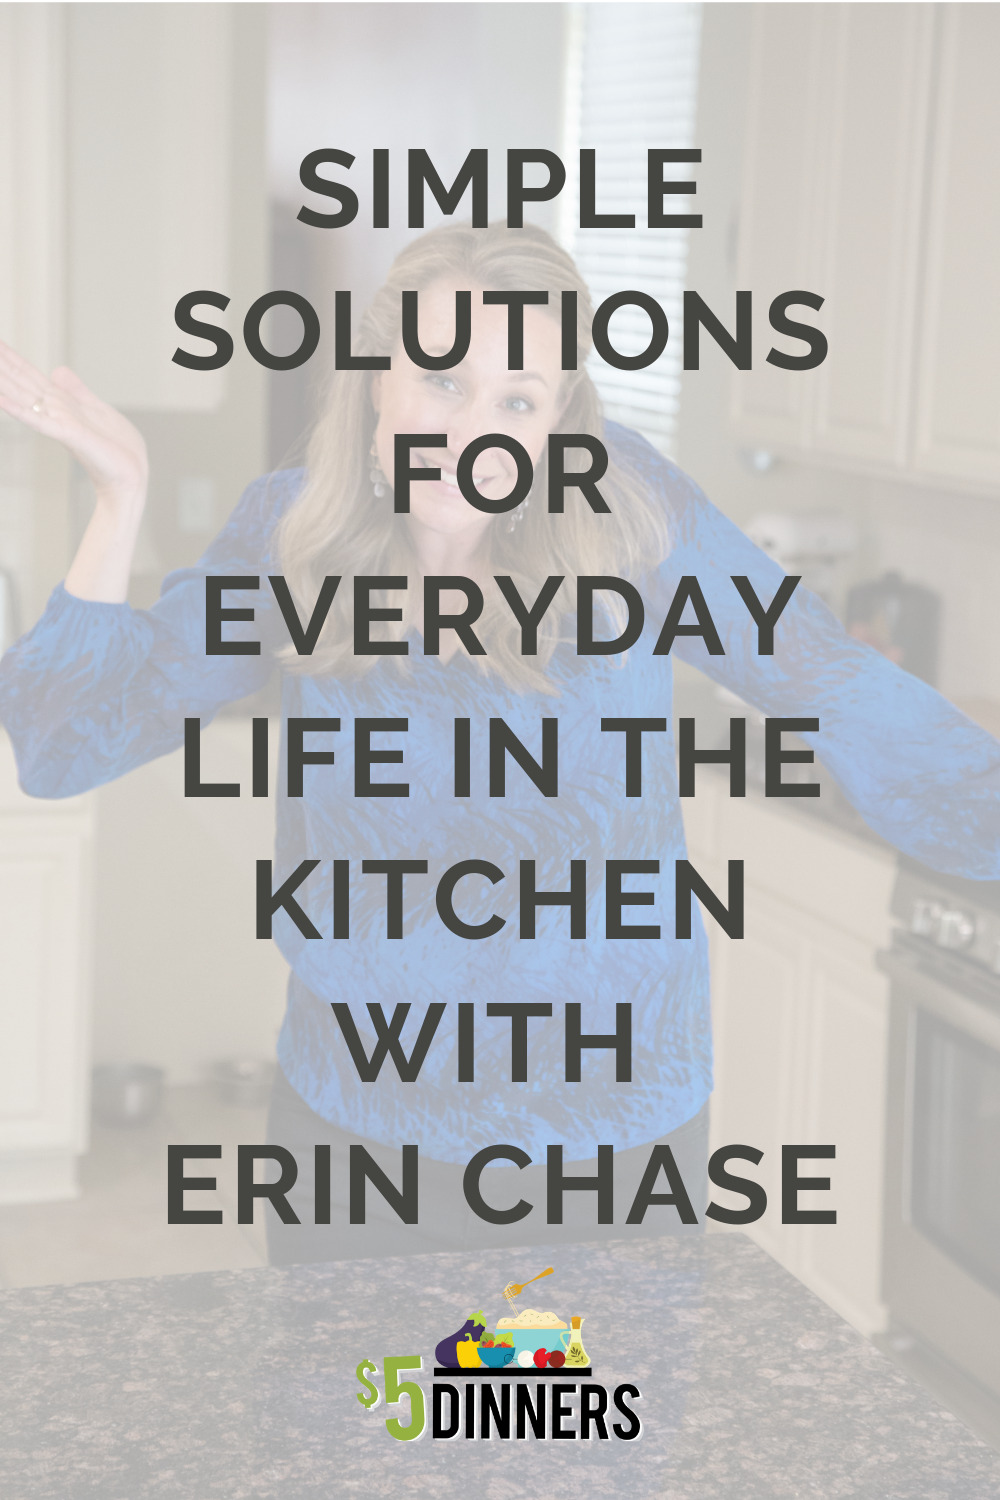 Sign up for Erin Chase's free email newsletter!